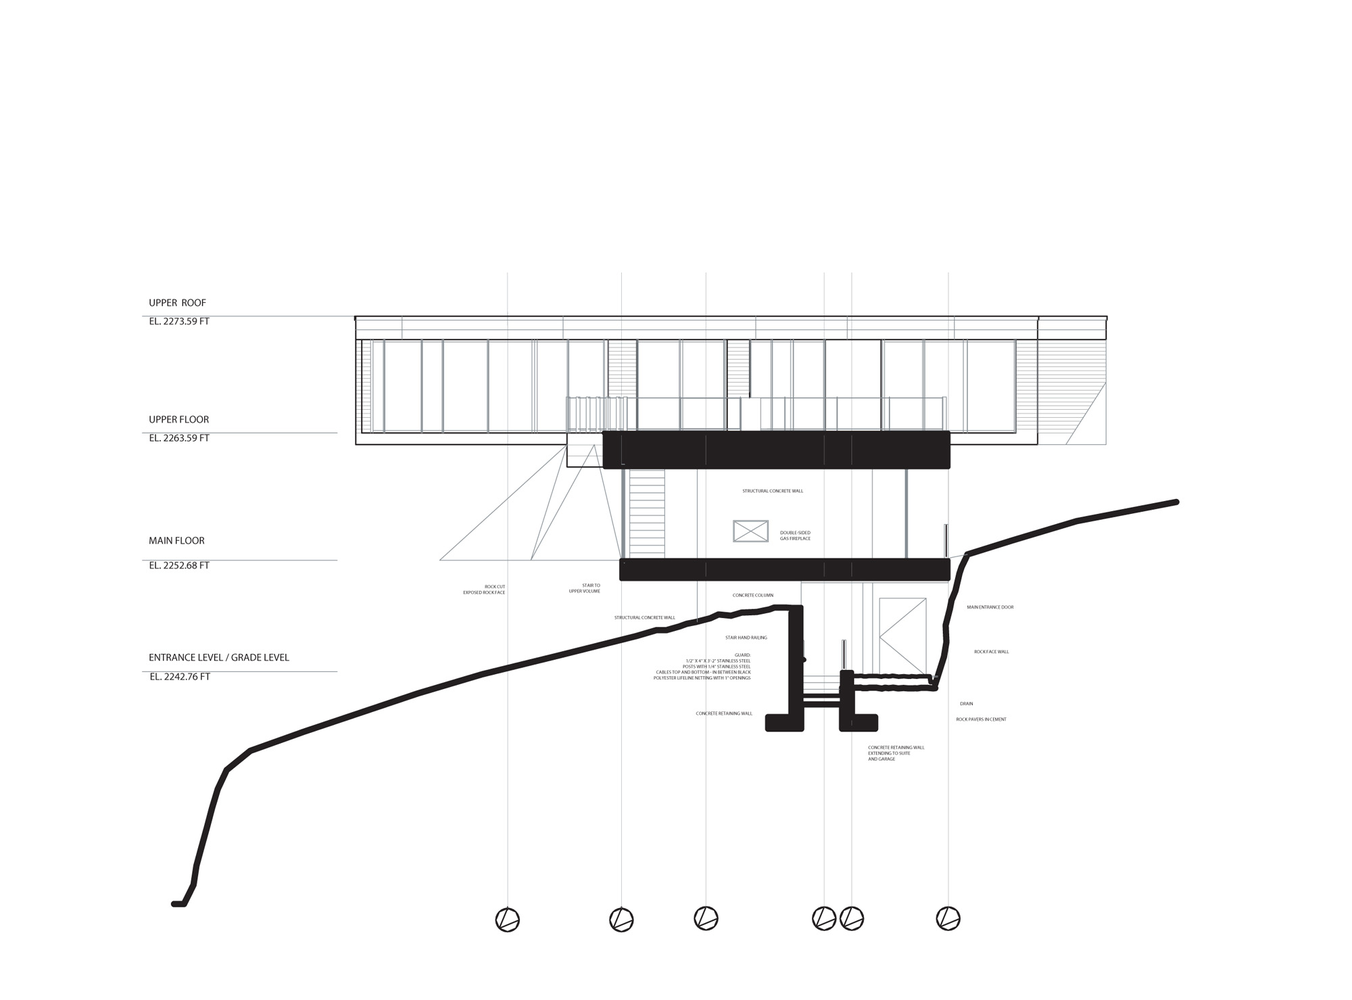 Steep Slope House Design, Canada: Most Beautiful Houses in